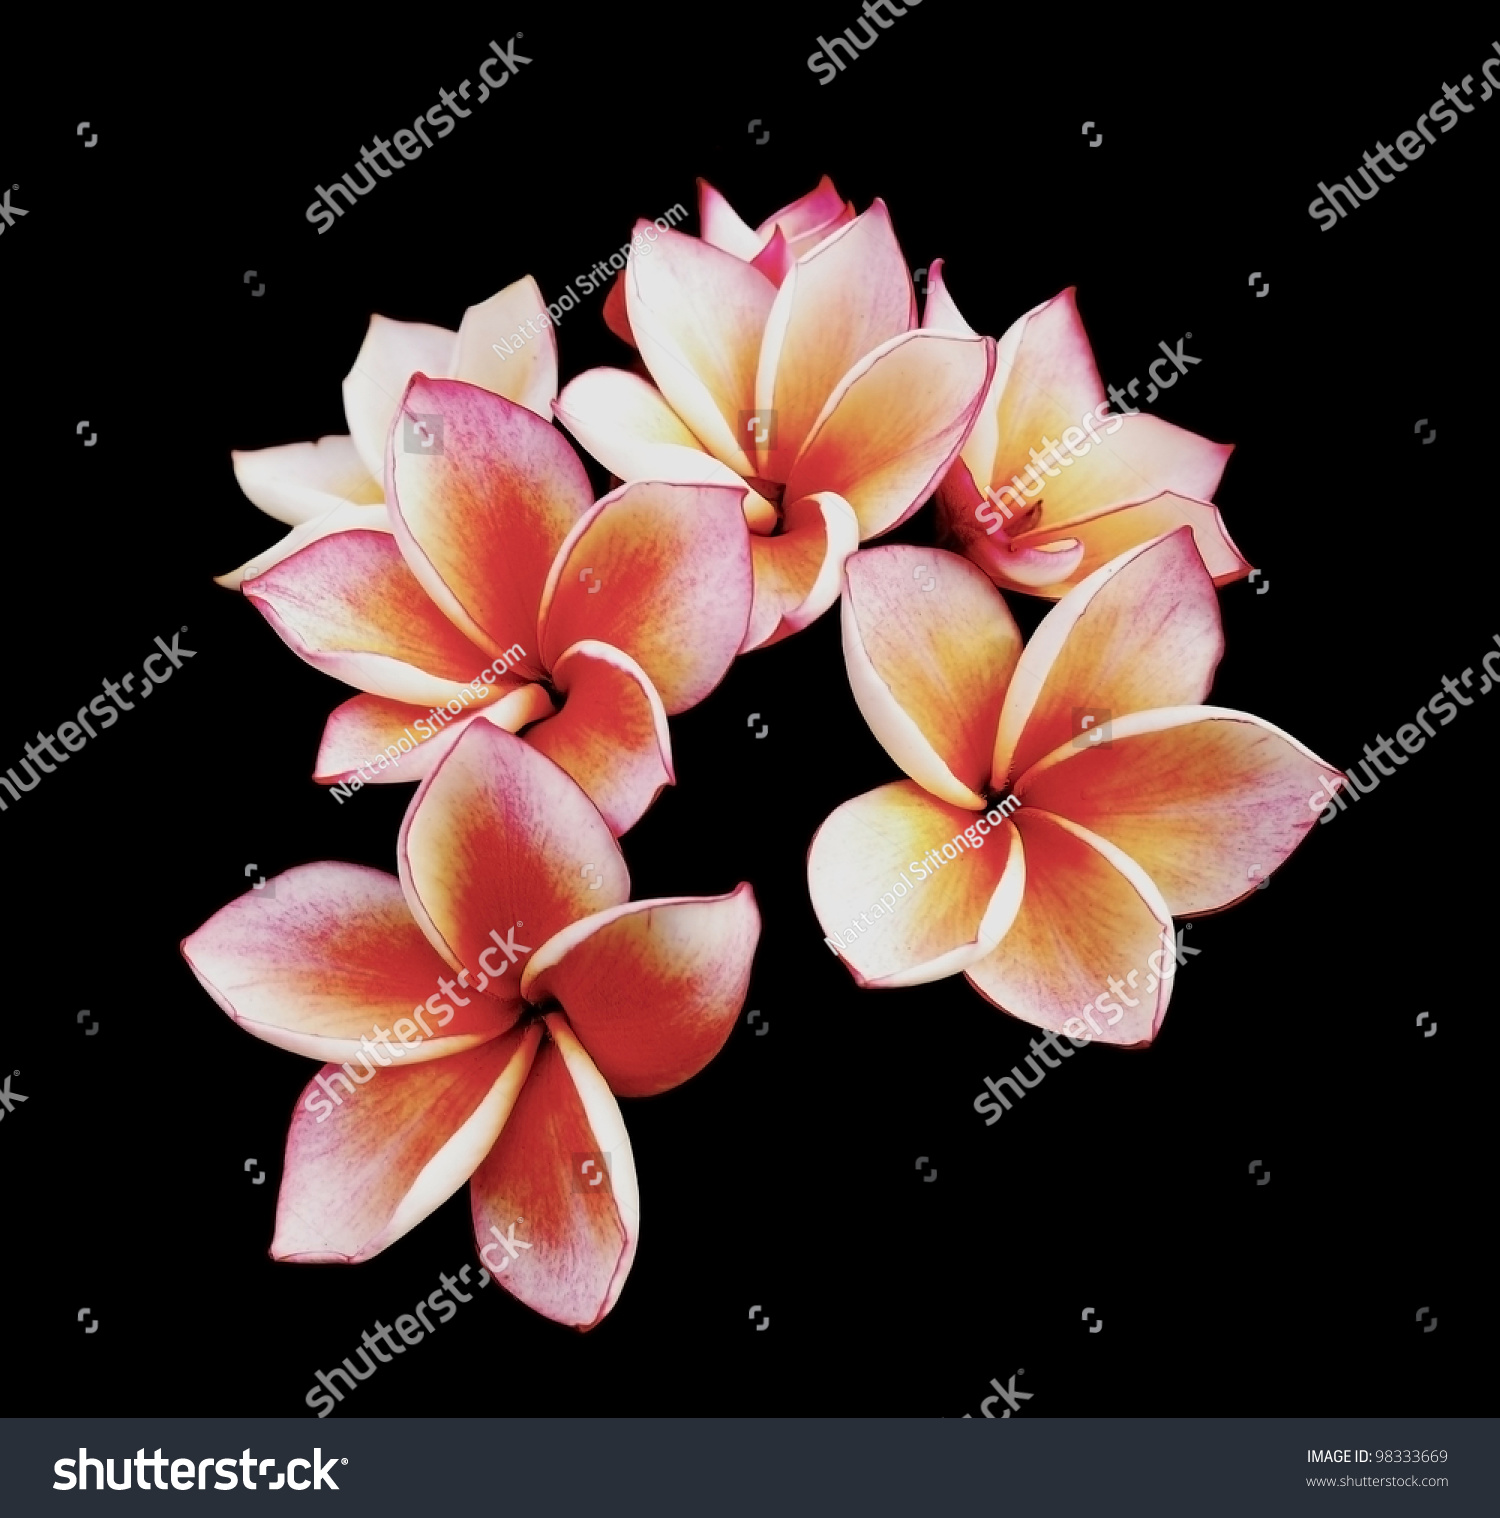 Glorious frangipani plumeria flowers black background stock glorious frangipani or plumeria flowers with black background dhlflorist Gallery